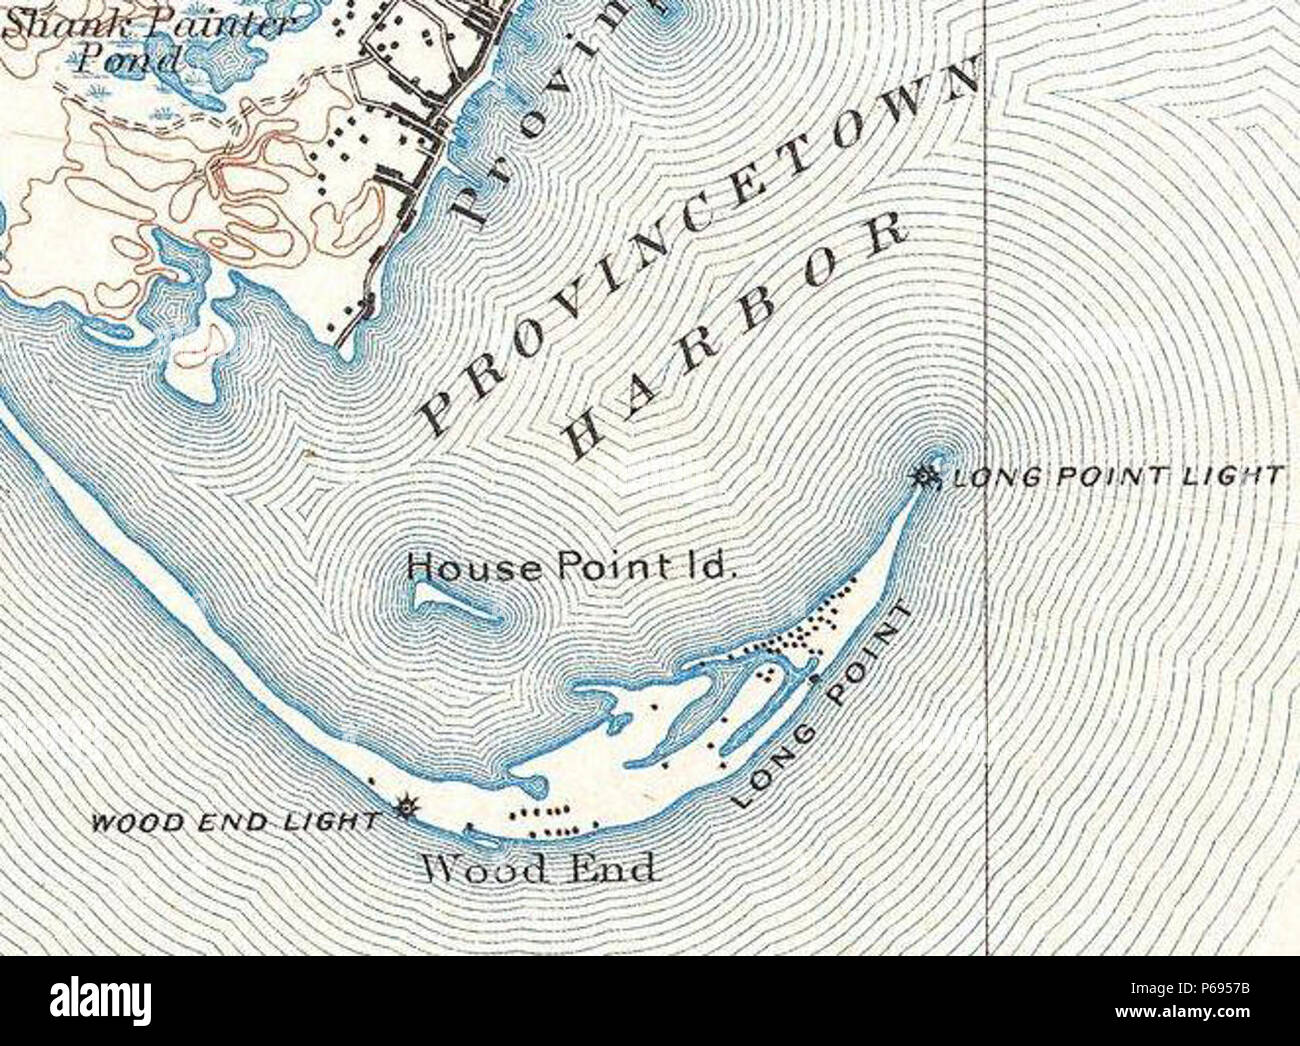 1889 USGS Long Point Provincetown. Extracted from 'File:1900 U.S. Geological Survey Map of Provincetown, Cape Cod, Massachusetts - Geographicus - Provincetown-USGS-1900.jpg'  Topographic Map of Provincetown, Massachusetts, including the northern part of Truro, Massachusetts. Scale: 1/62,500; Contour interval 20 feet; Datum: mean Sea Level. Surveyed in 1887.  July 1889 edition, reprinted January 1900. Henry Gannett, Chief Geographer; Marcus Baker, Geographer in charge. - Stock Image